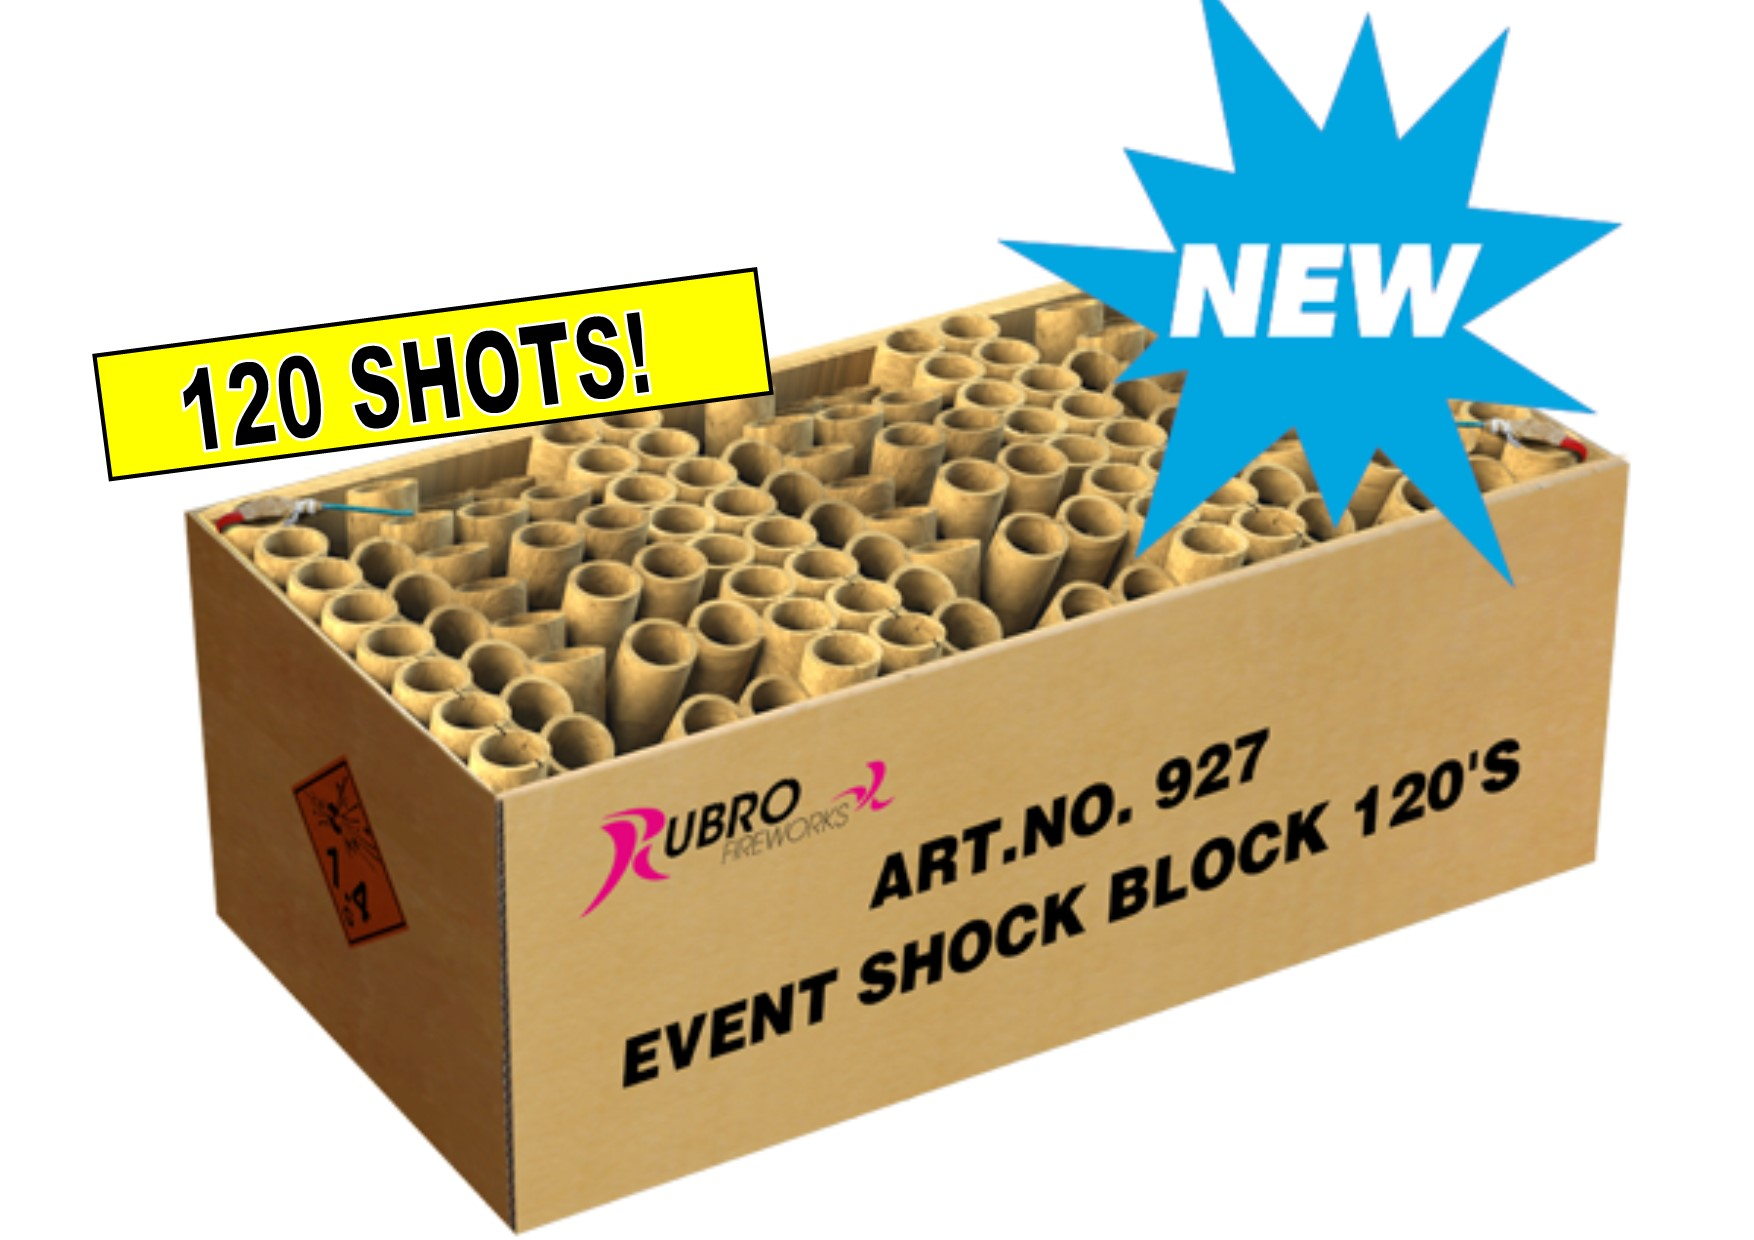 ART. 927 EVENT SHOCK BLOCK, 120 SHOTS NIEUW!